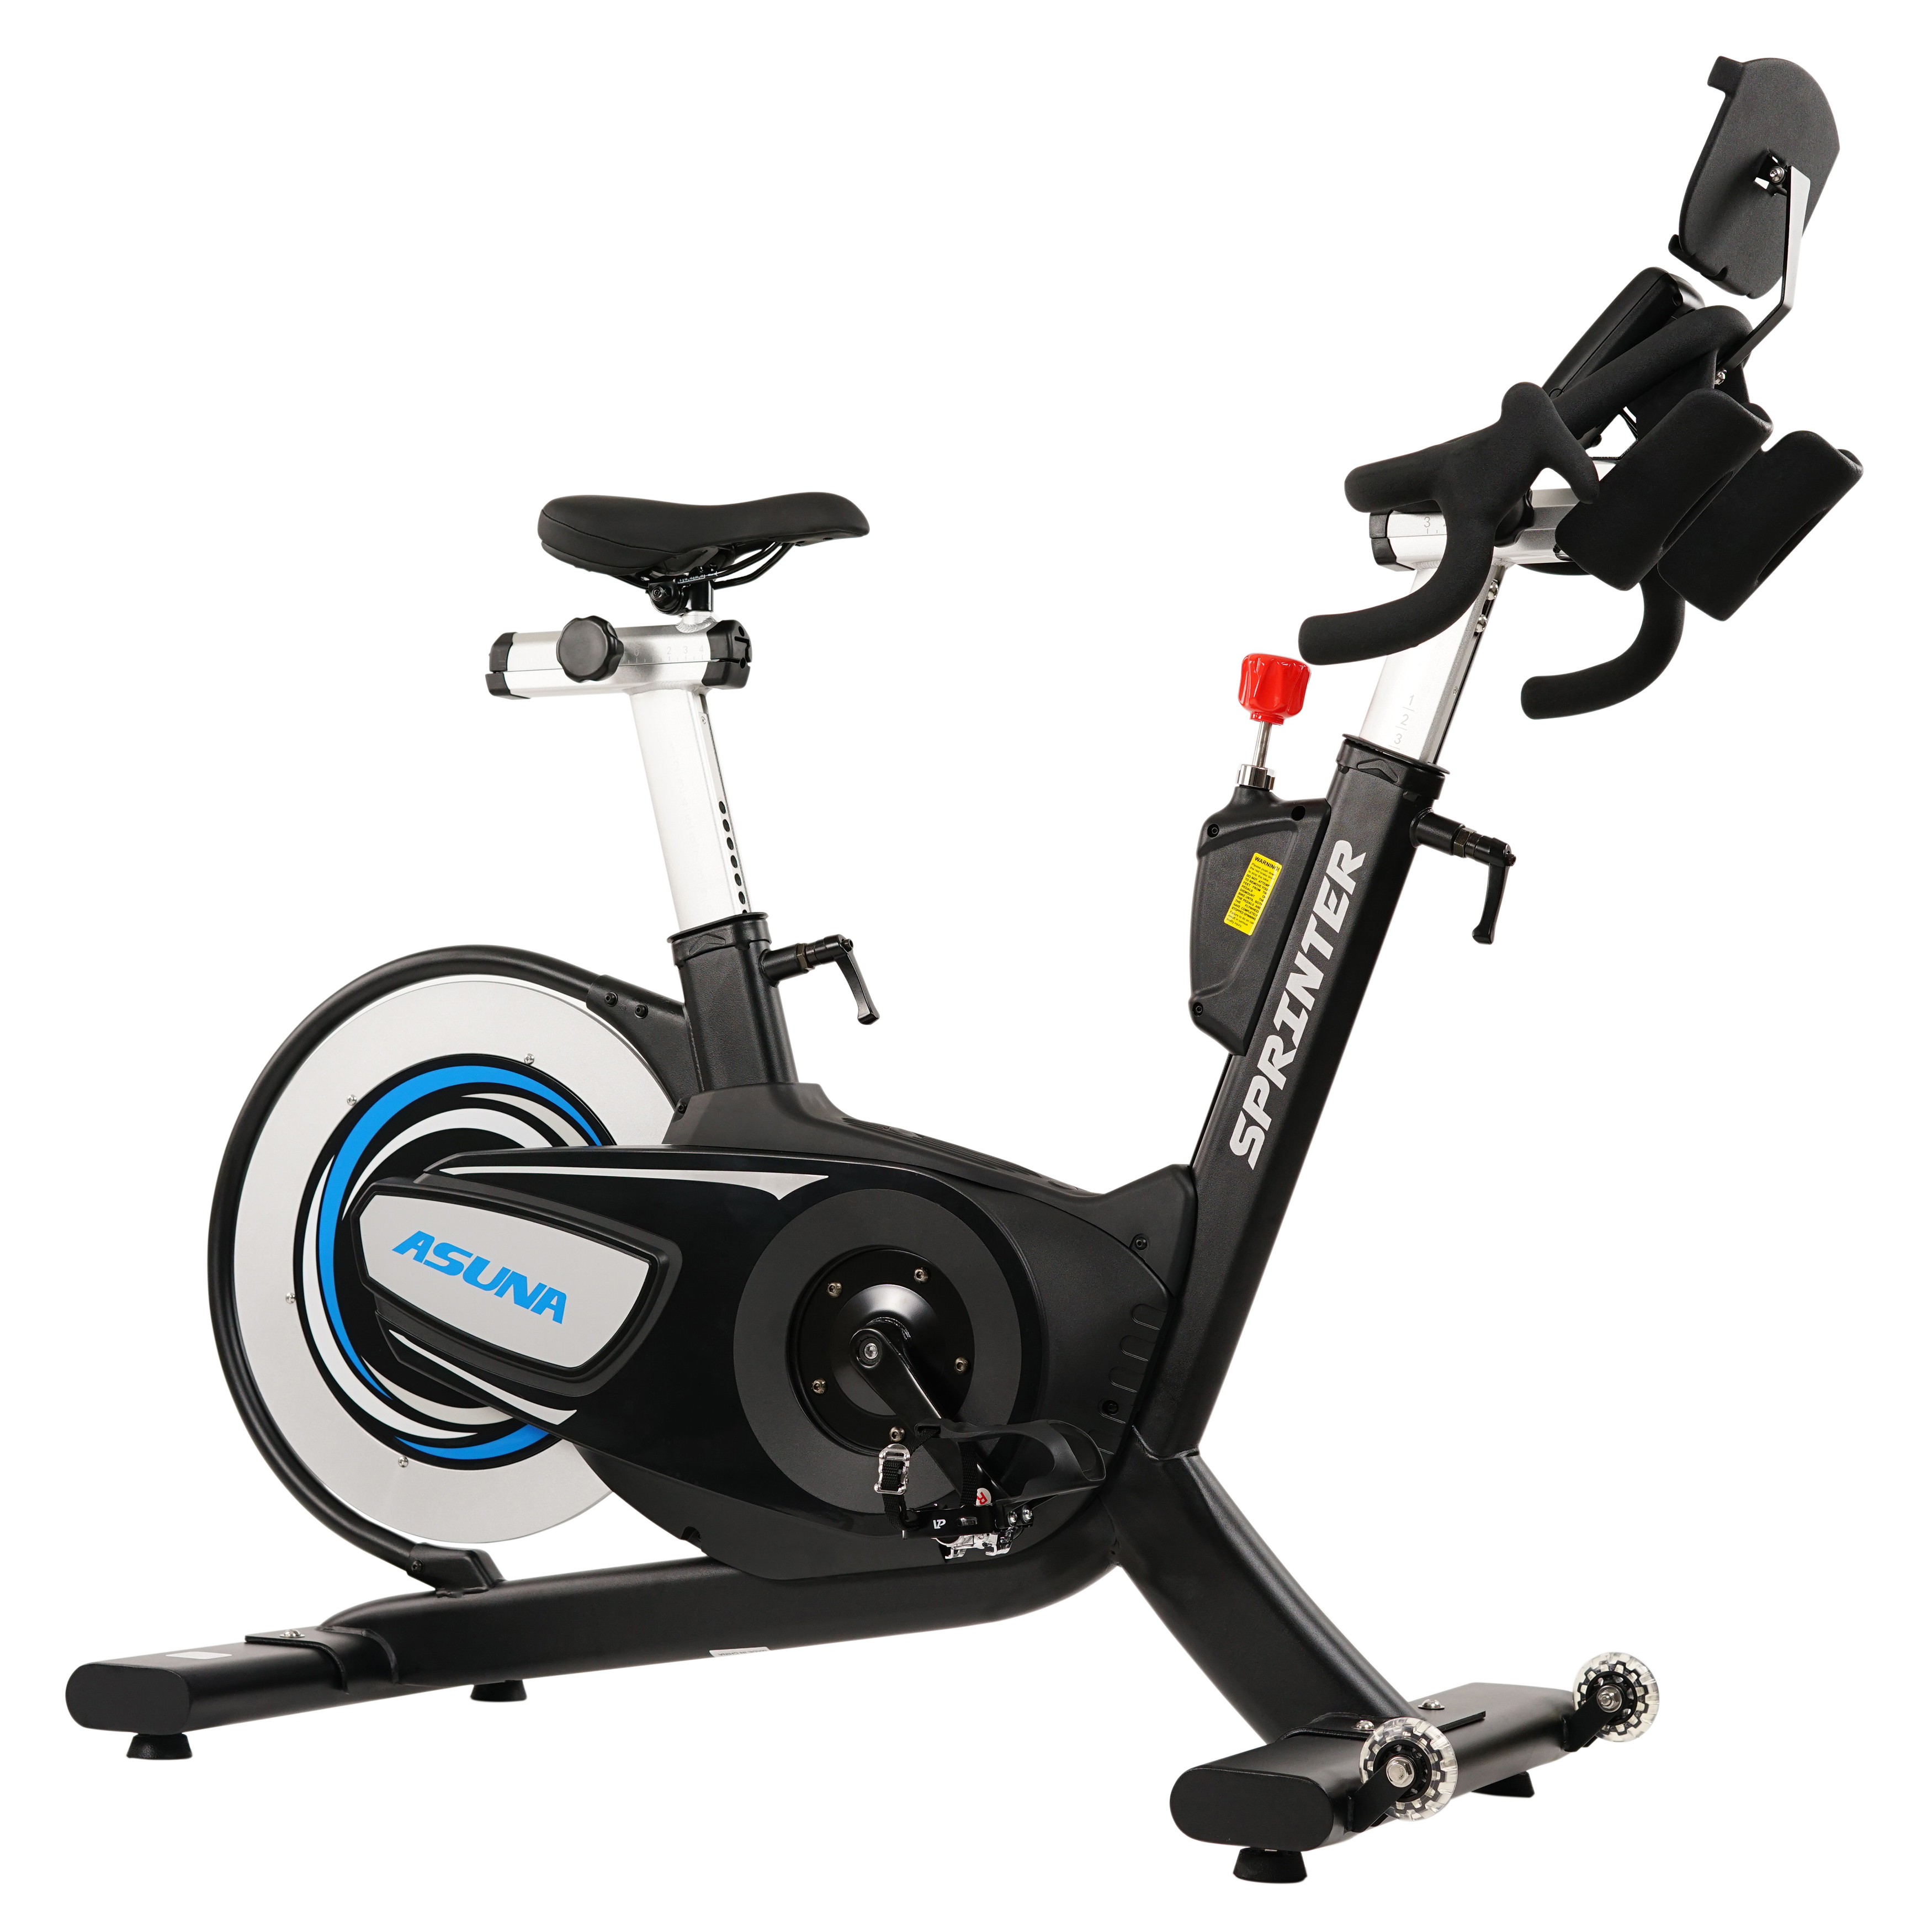 ASUNA Sprinter Cycle Exercise Bike Magnetic Belt, Rear Drive, High Weight Capacity Commercial Indoor Cycling... by Sunny Health & Fitness